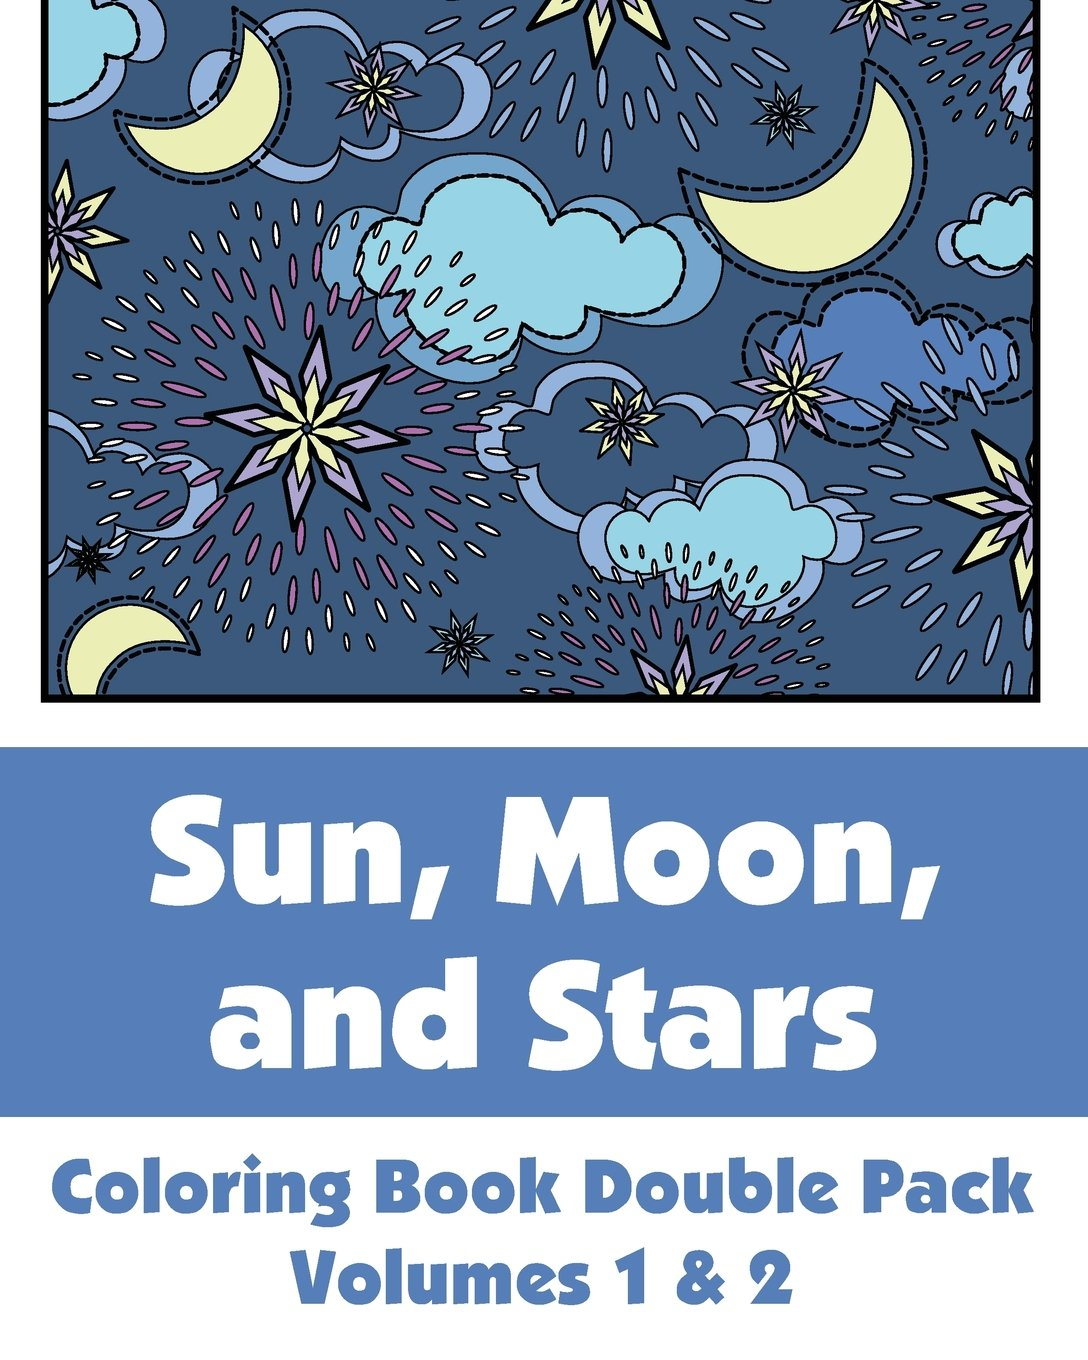 Download Sun, Moon, and Stars Coloring Book Double Pack (Volumes 1 & 2) (Art-Filled Fun Coloring Books) pdf